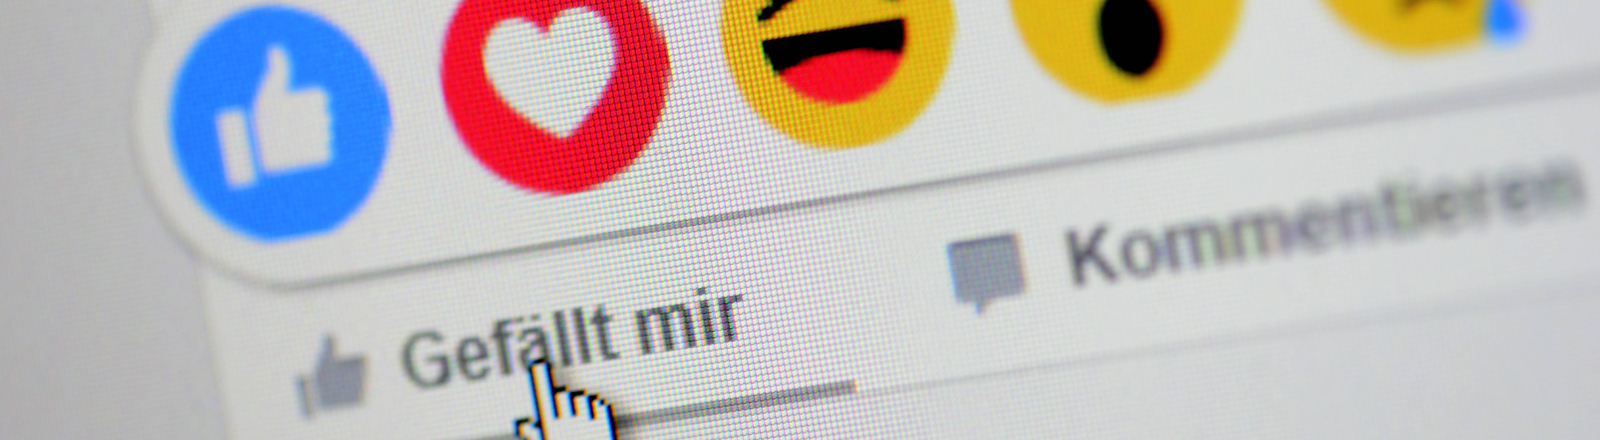 Like-Buttons und Emoticons bei Facebook